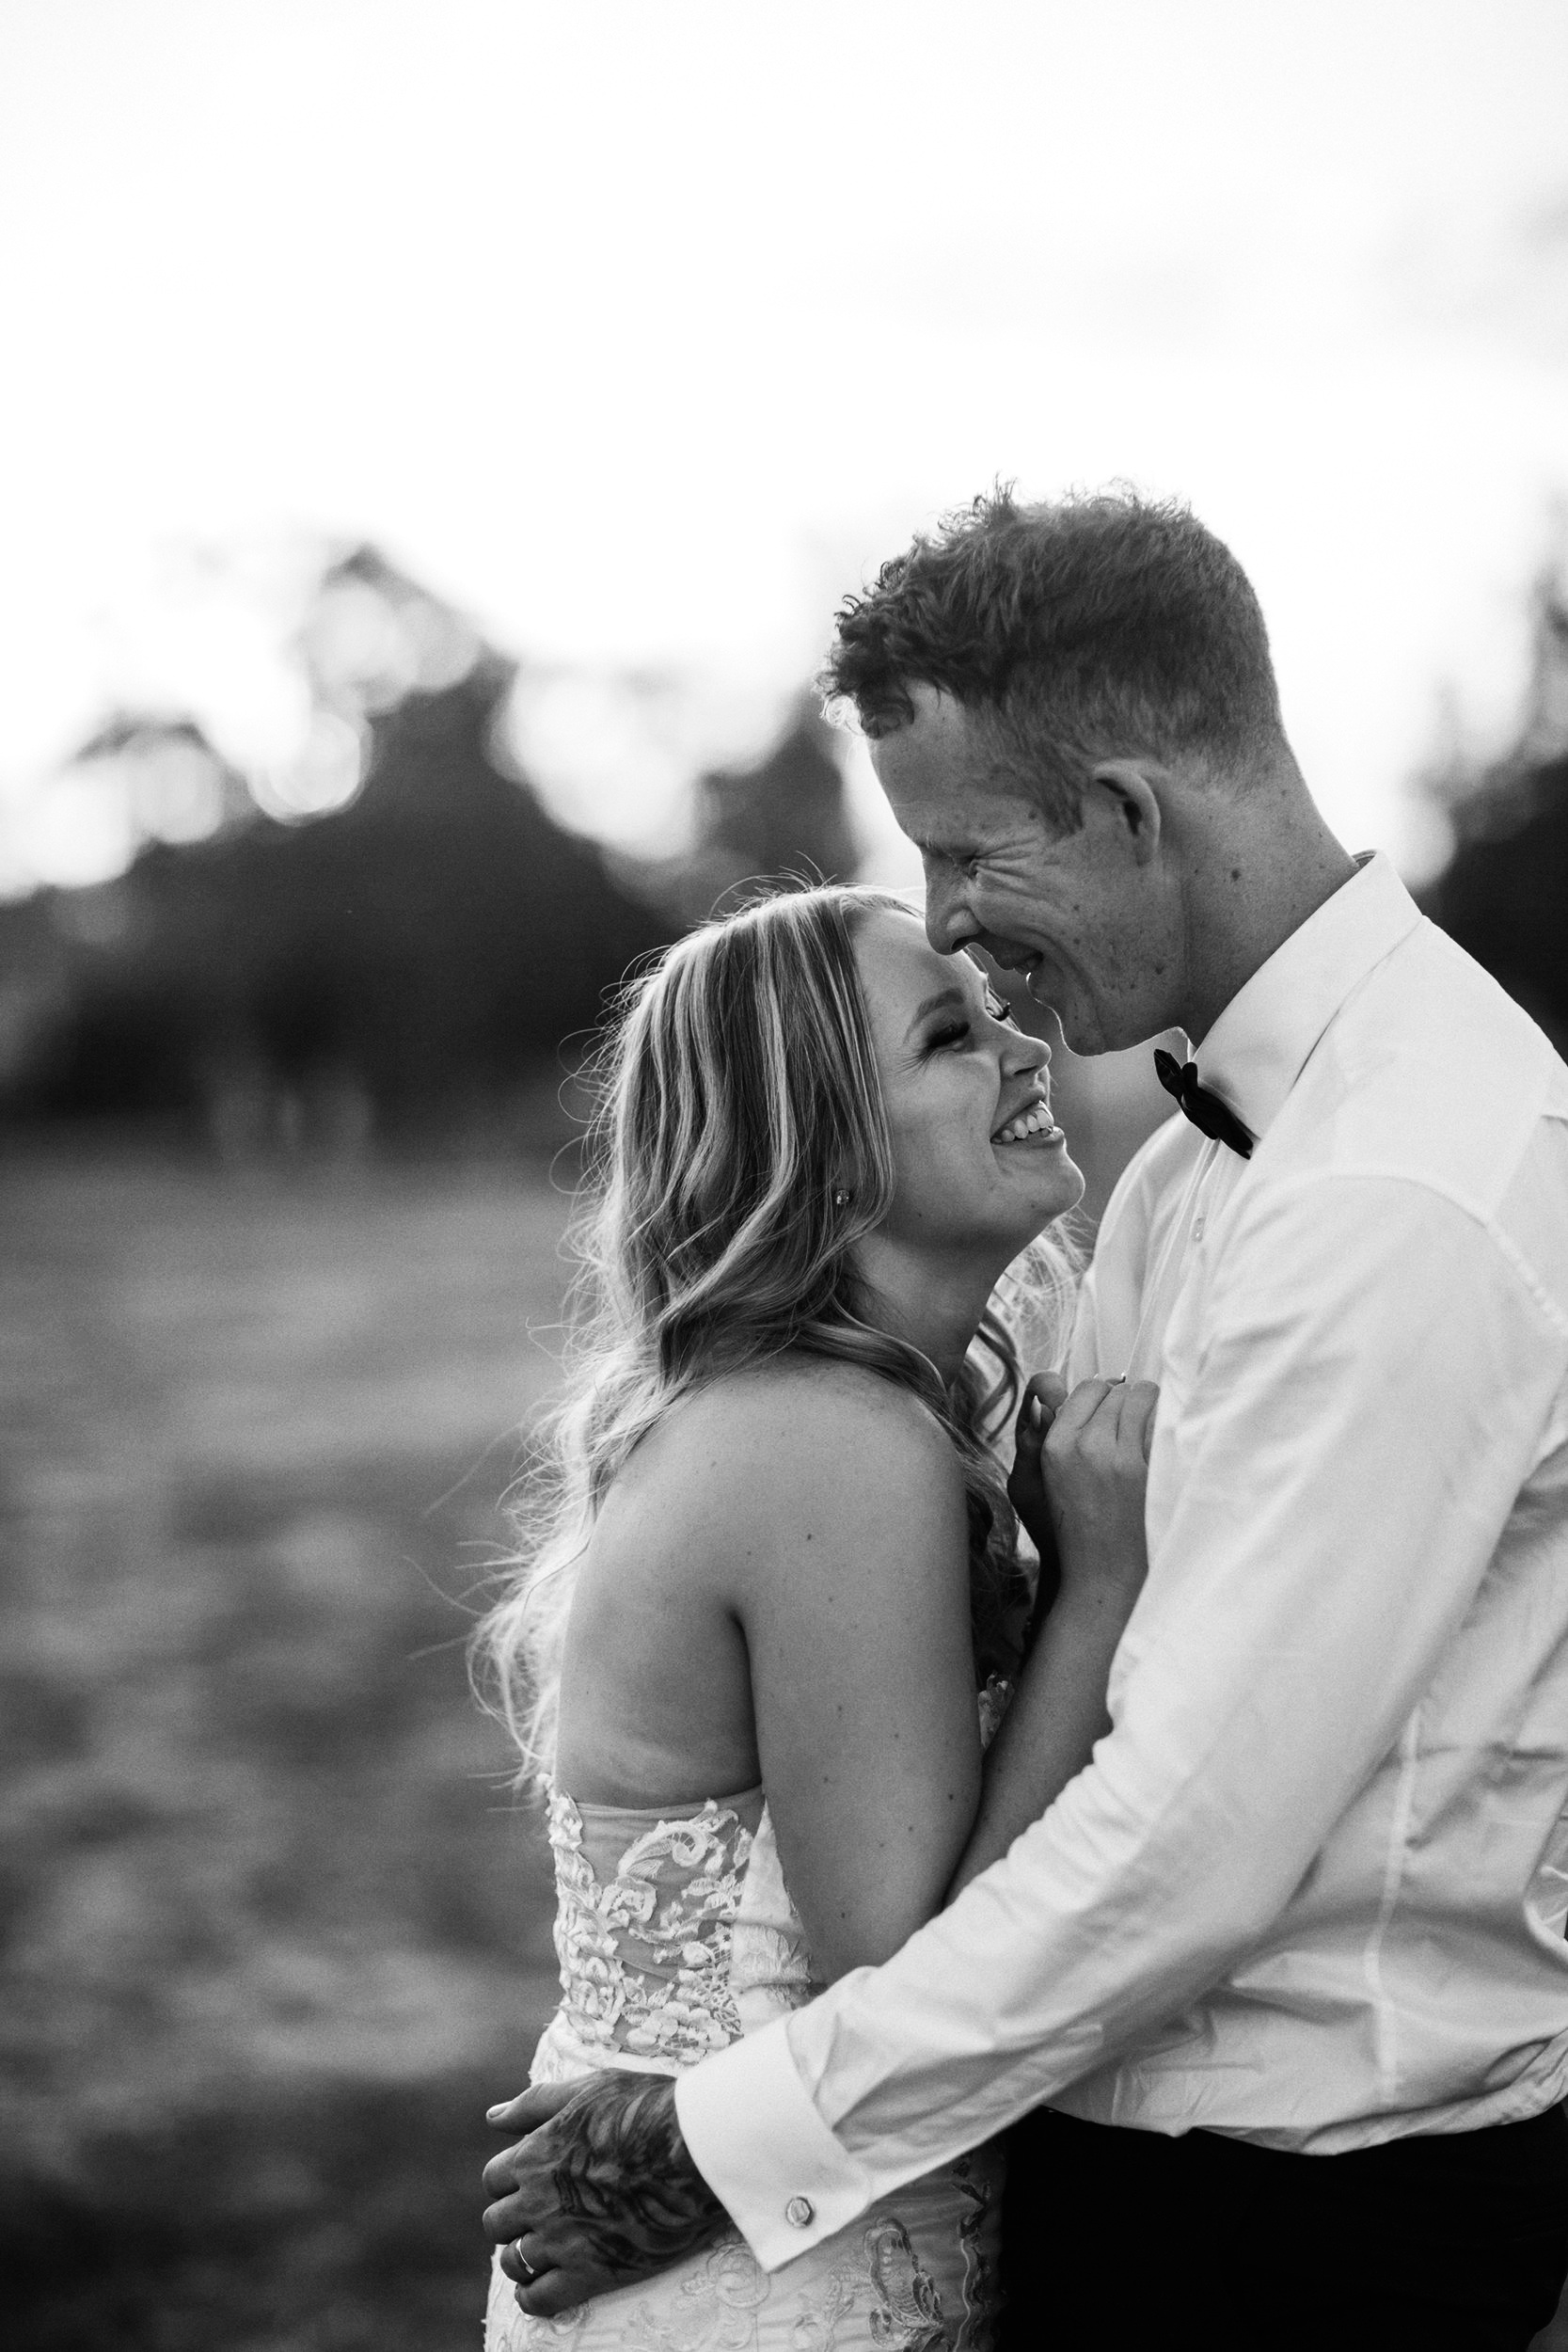 Erin & Jarrod - David is such a great photographer! He captured such amazing photos on our wedding day! He was also very lovely and easy going. He went above and beyond to make us feel comfortable and get amazing shots. We couldn't be happier.